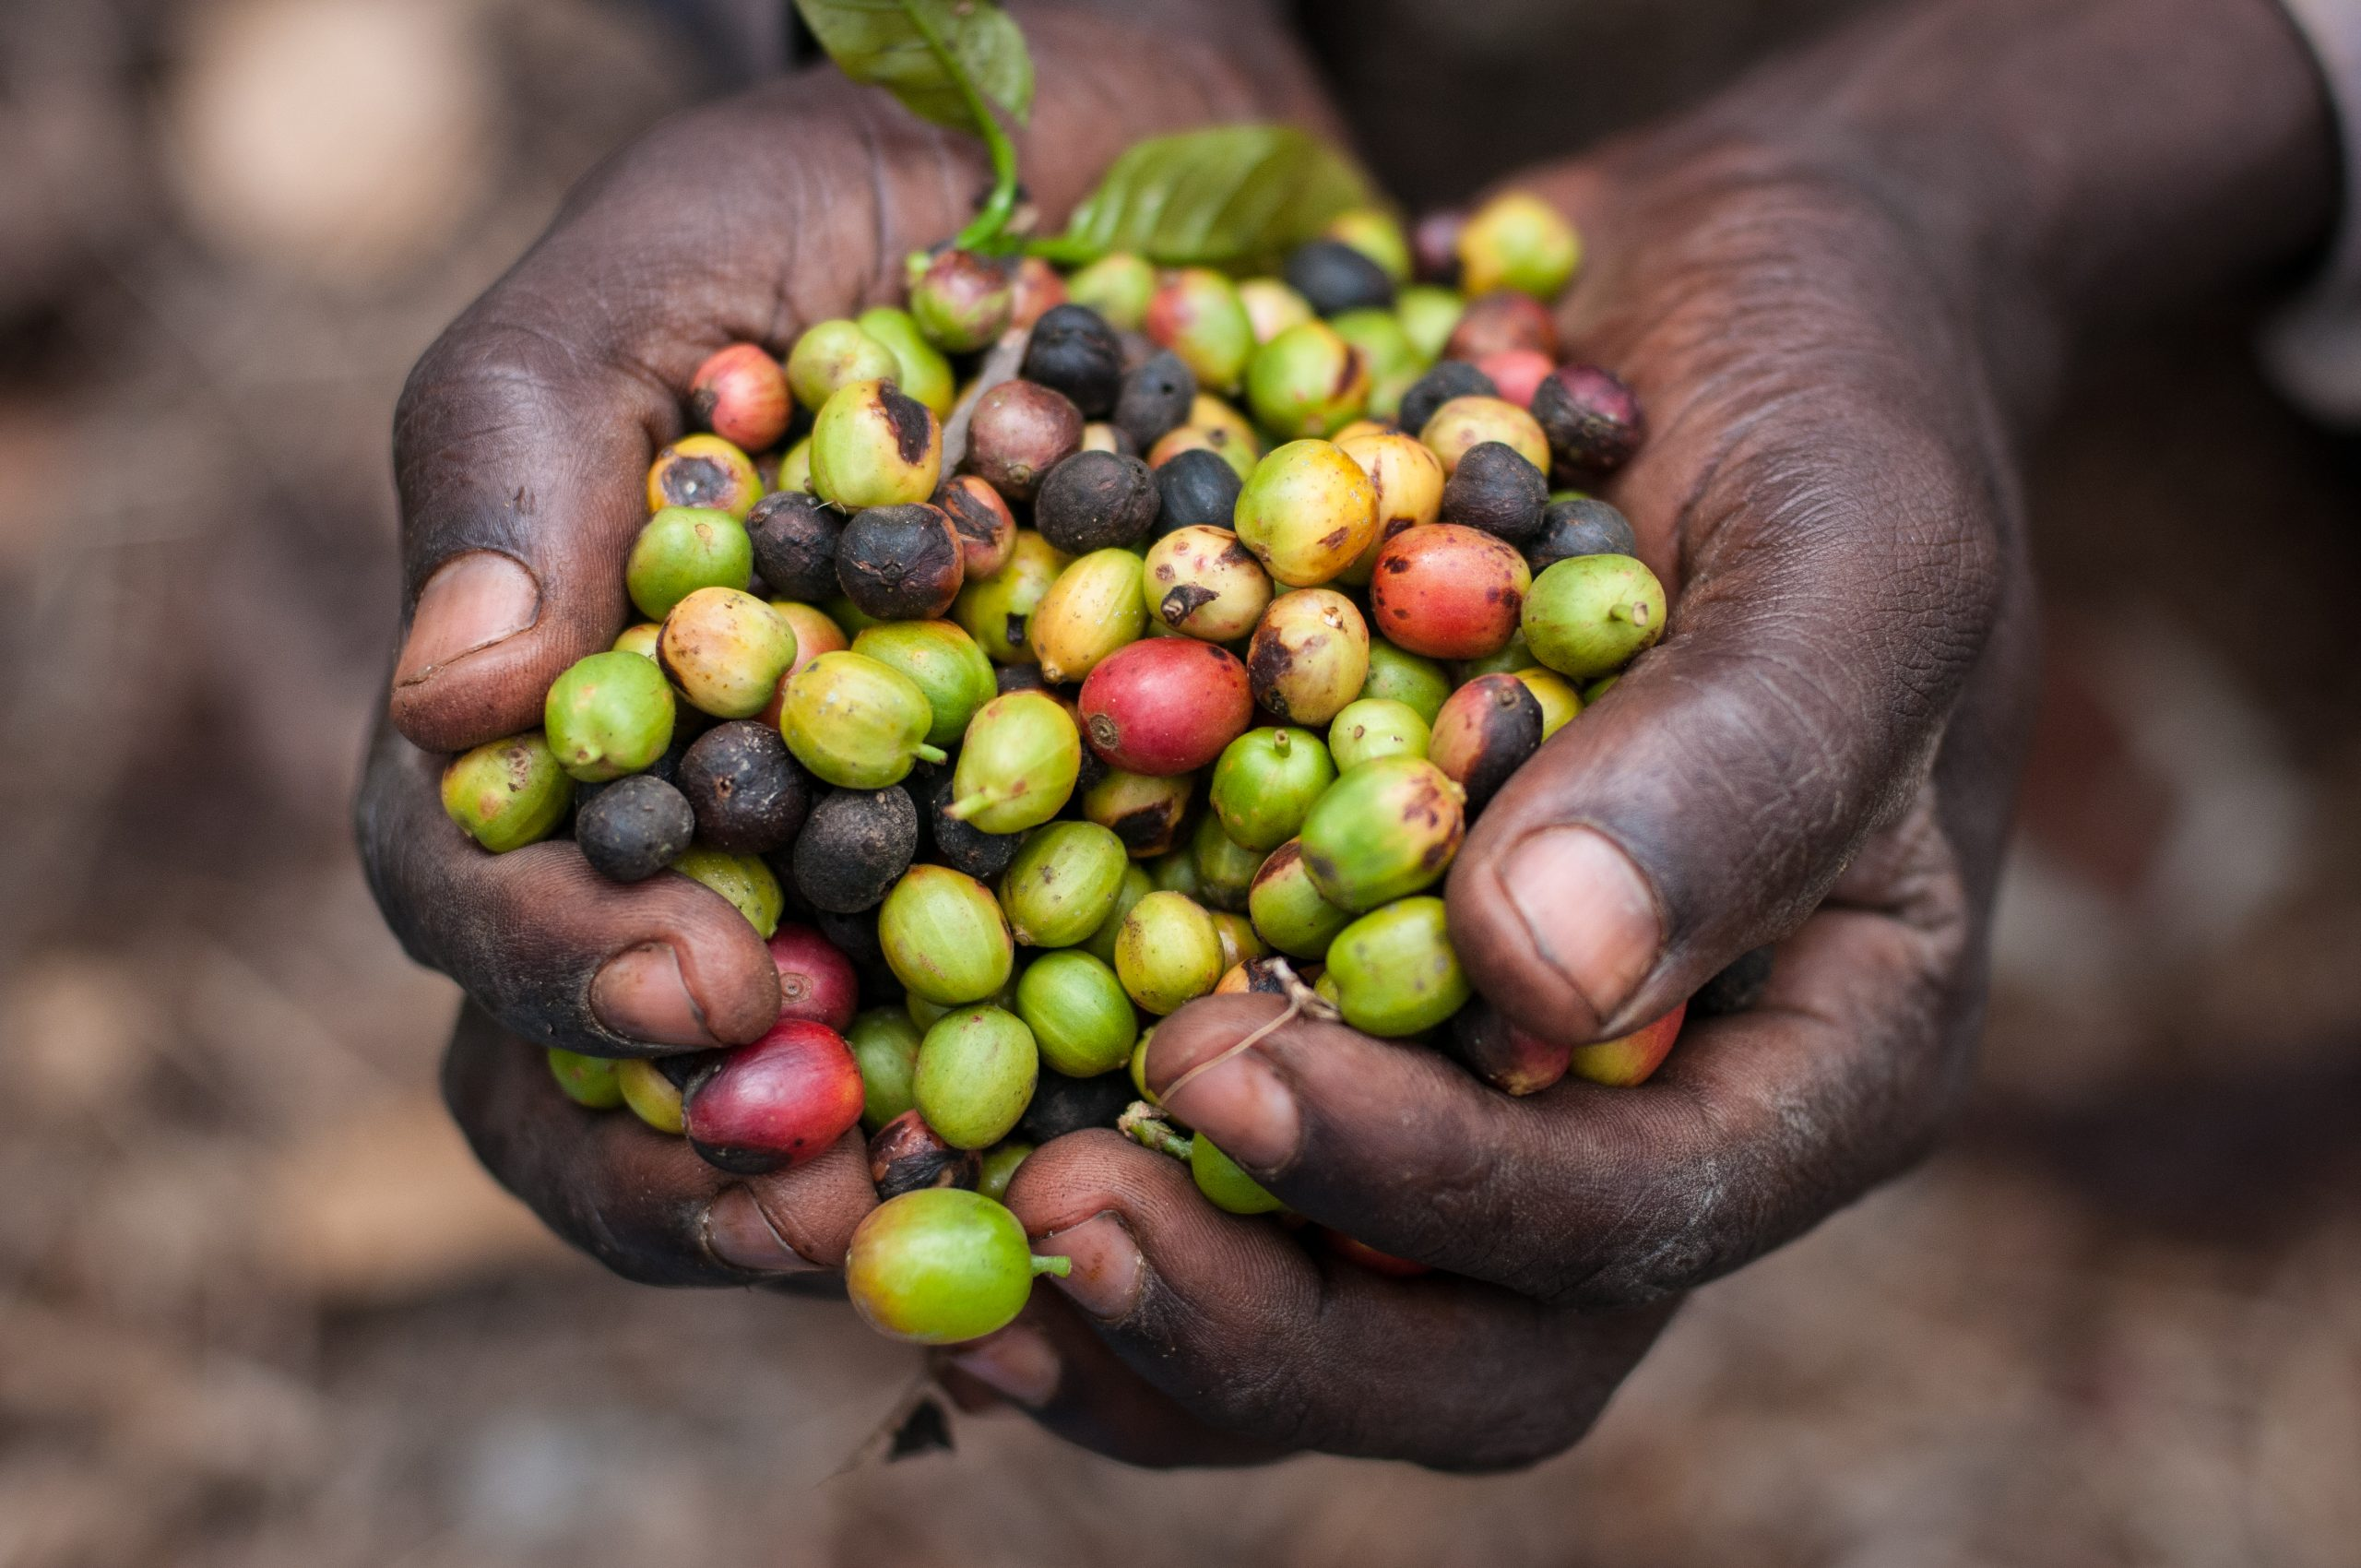 SMEs in Food Systems: A Framework for Engagement